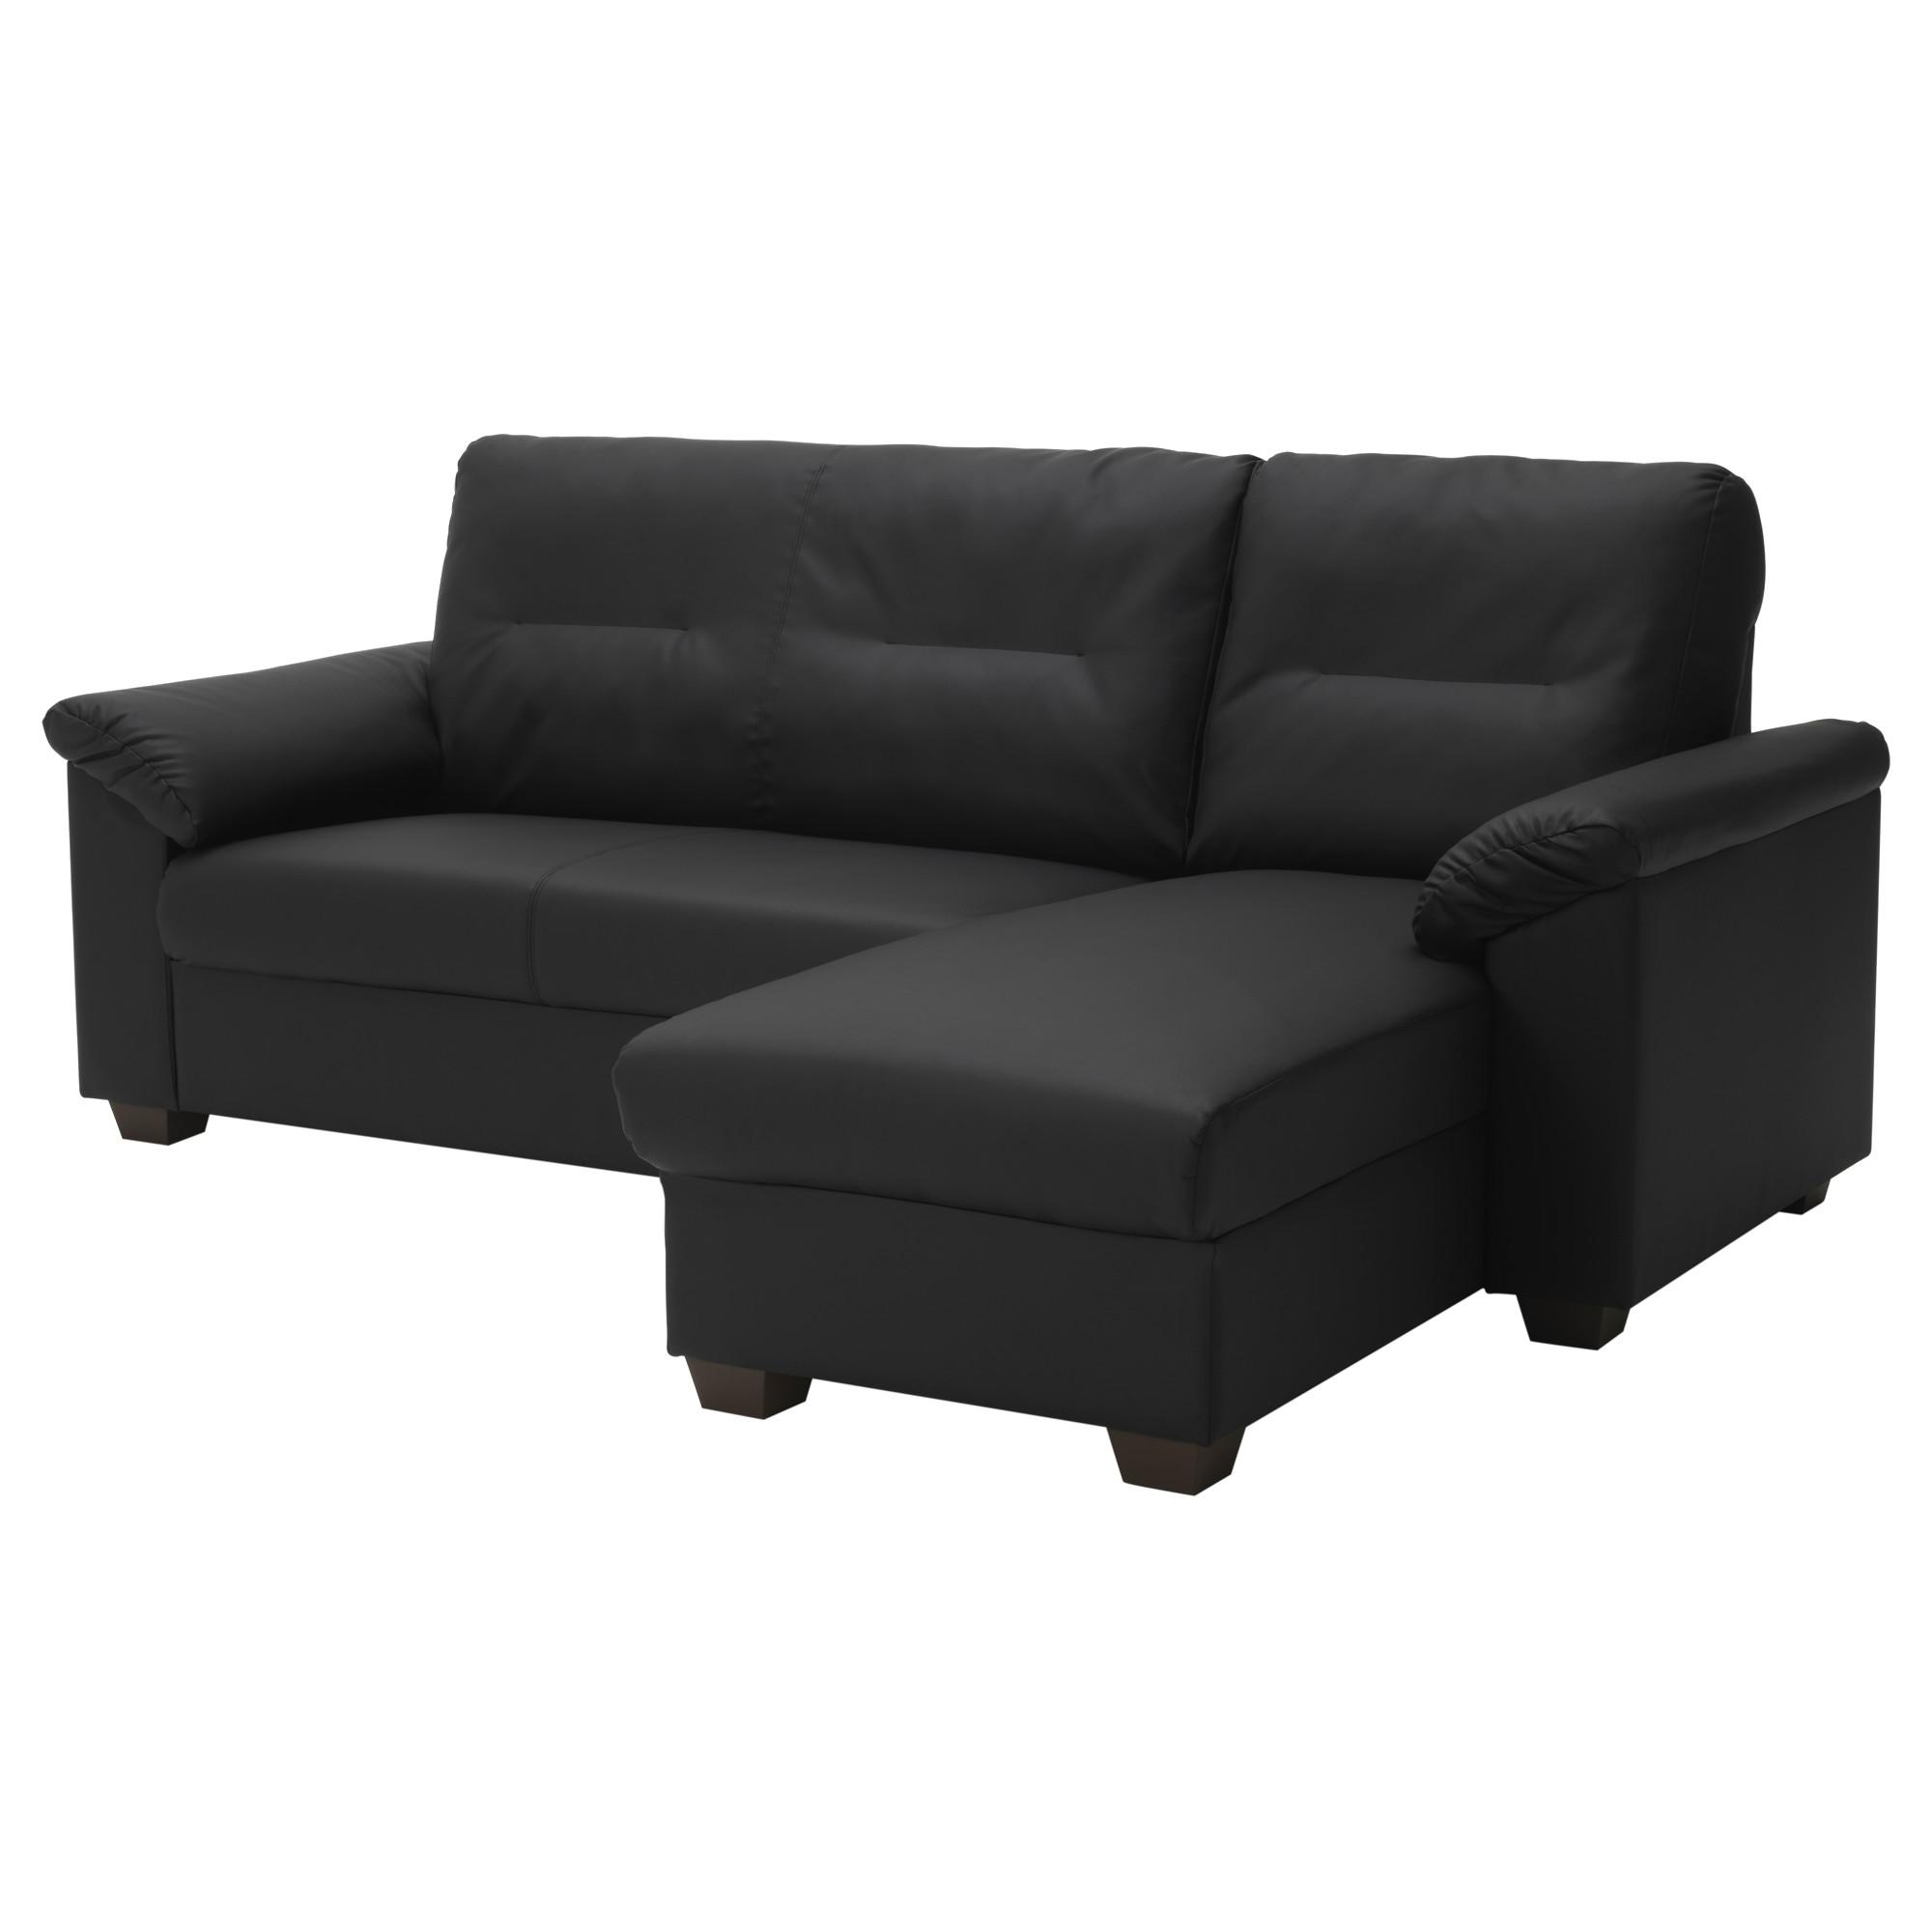 Furniture: Splendid Sectional Couches Ikea With Modern Styles And Regarding Curved Sectional Sofas With Recliner (Image 11 of 20)